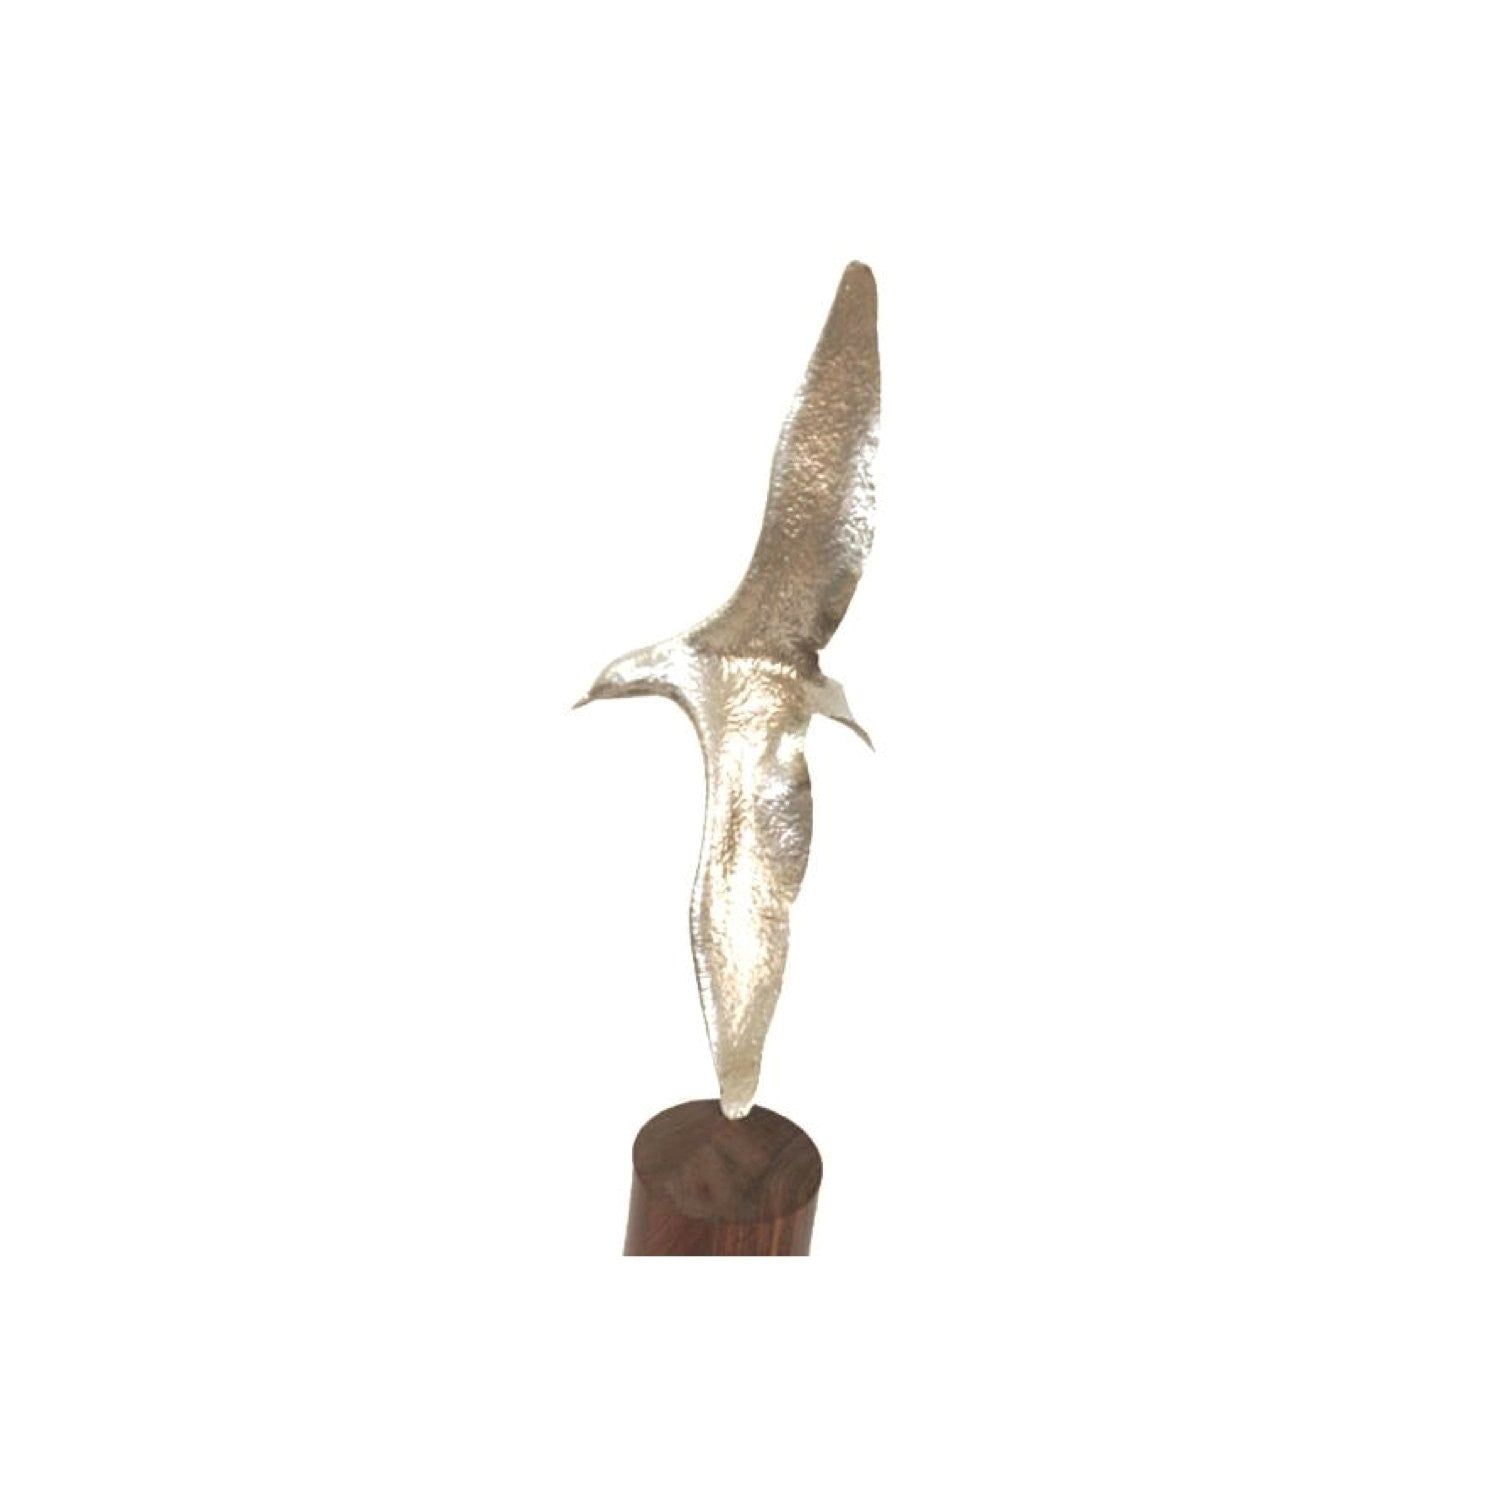 Bronze Sculpture by Burry -  Limited Edition